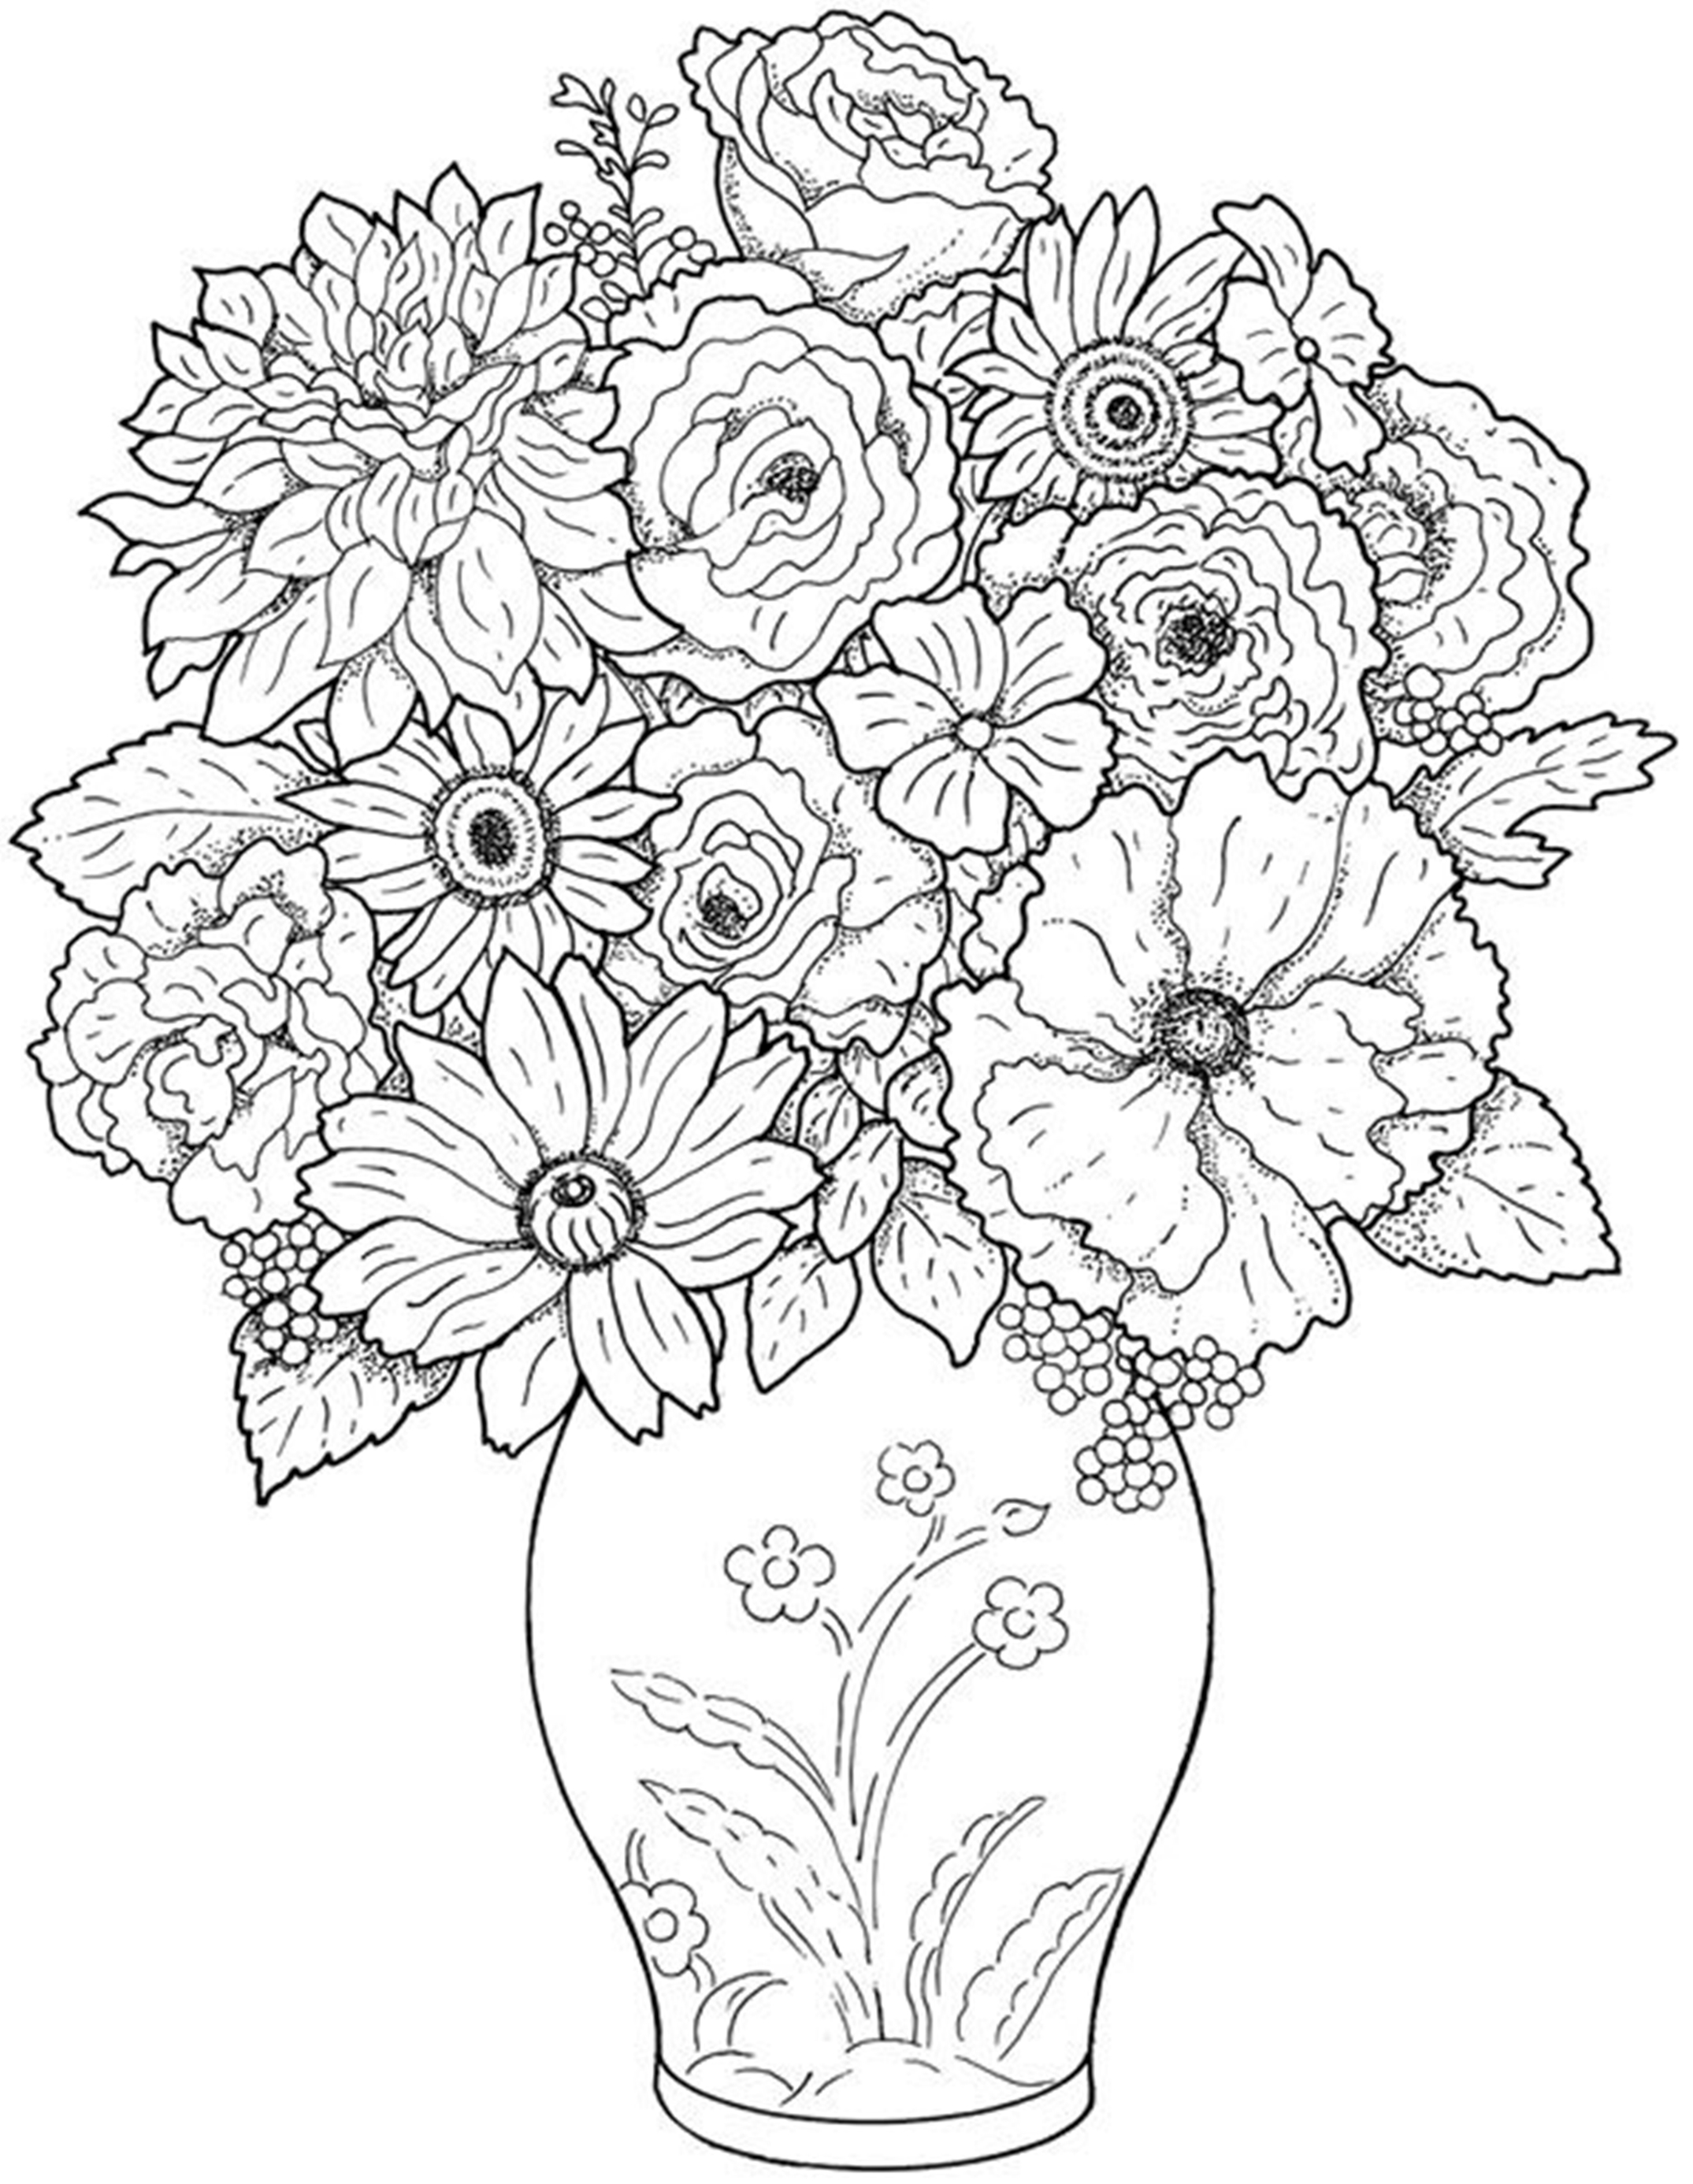 coloring pages of flowers free printable flower coloring pages for kids best flowers coloring of pages